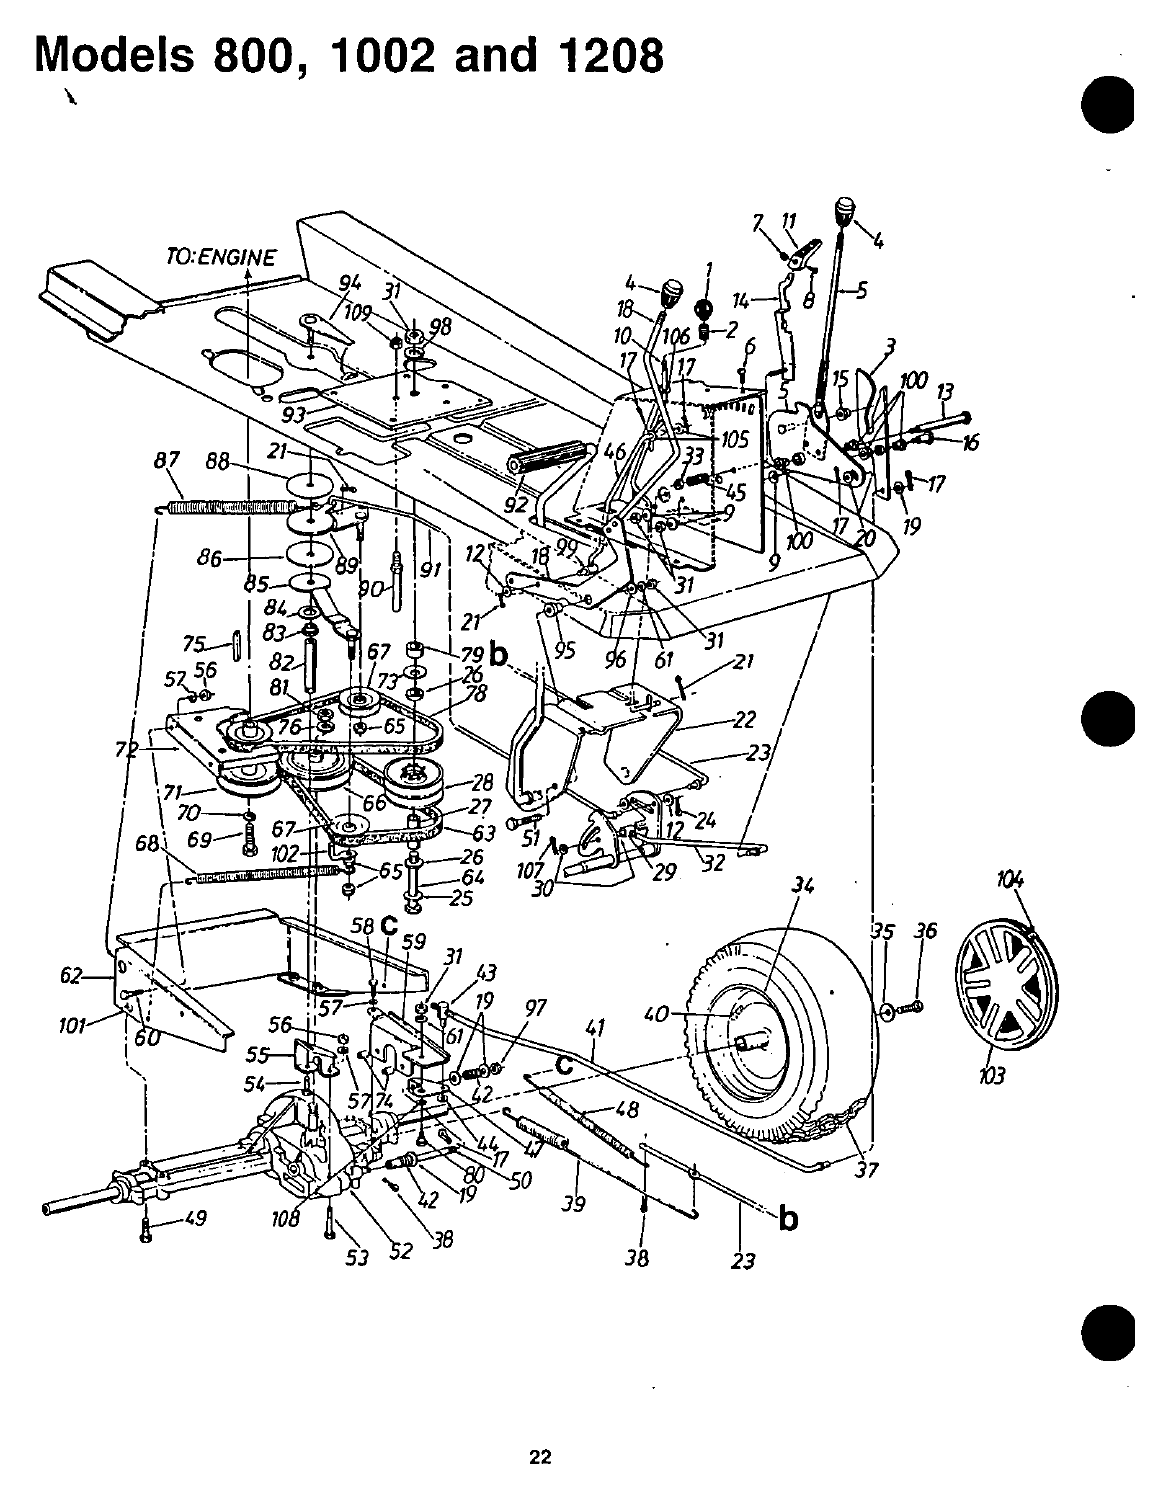 Page 22 of Bolens Lawn Mower 1002 User Guide